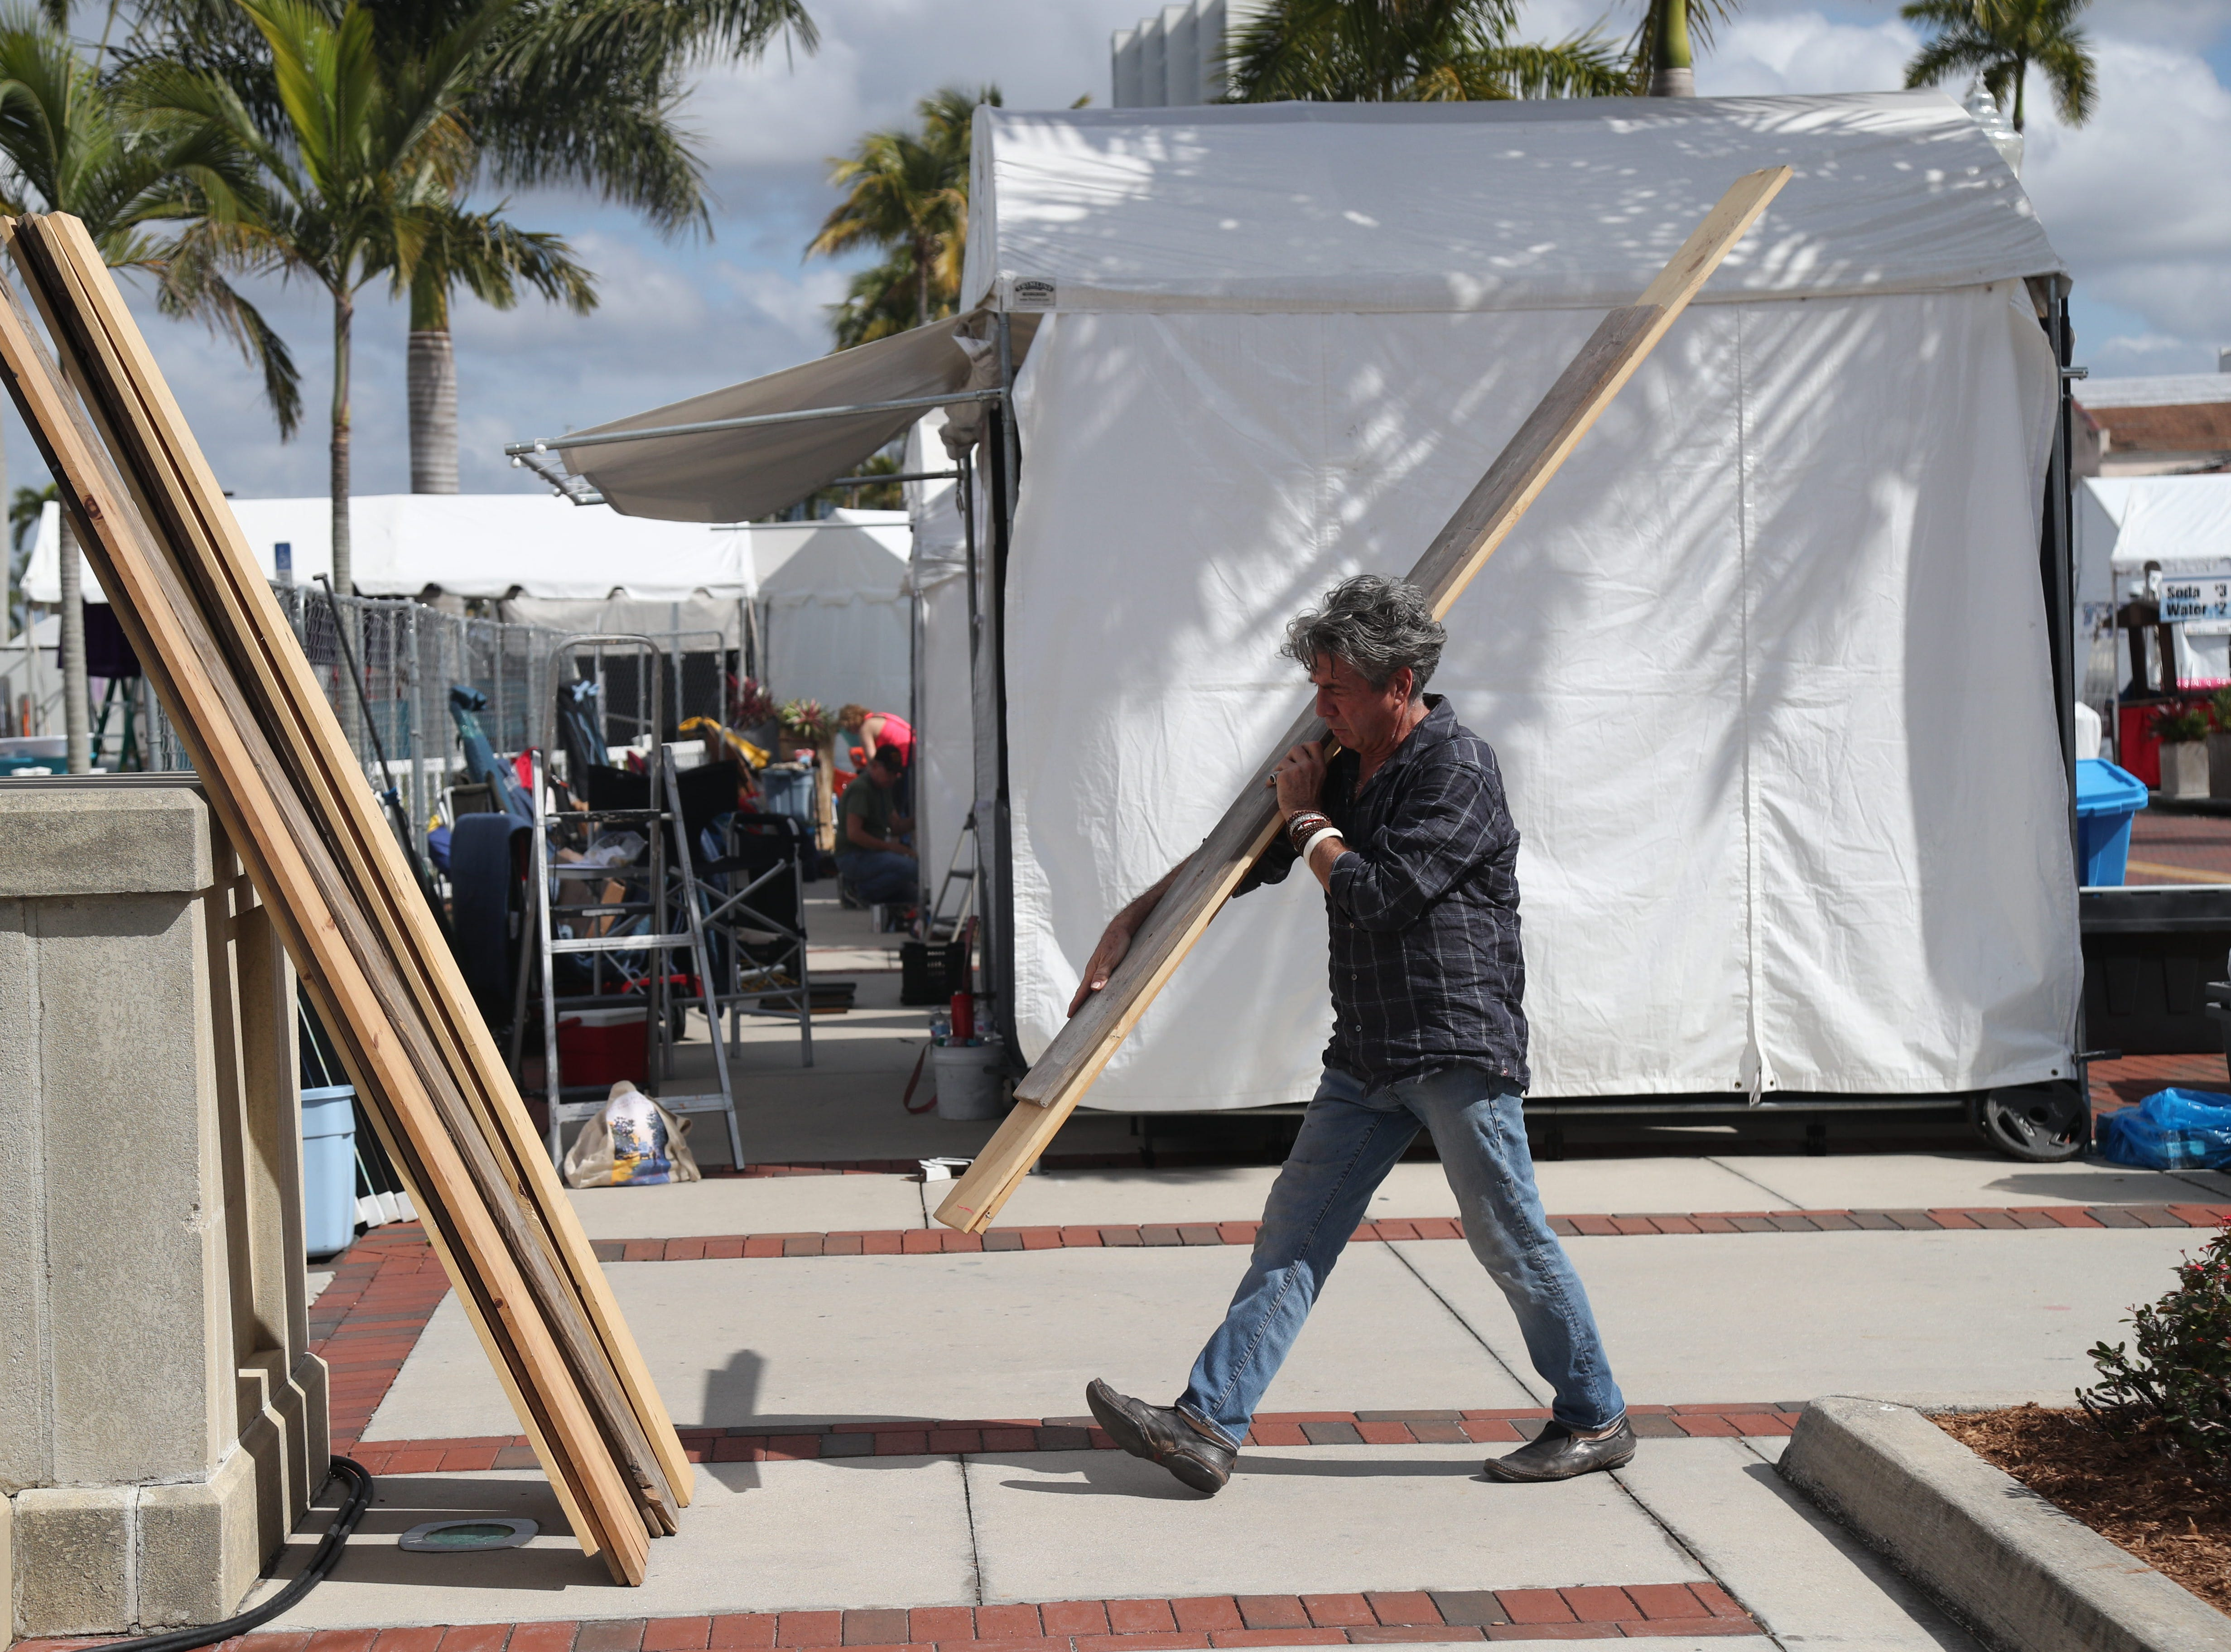 Jack Charney, a ceramic sculptor and potter from New Mexico, sets up at ArtFest in downtown Fort Myers on Friday, Feb 1, 2019.